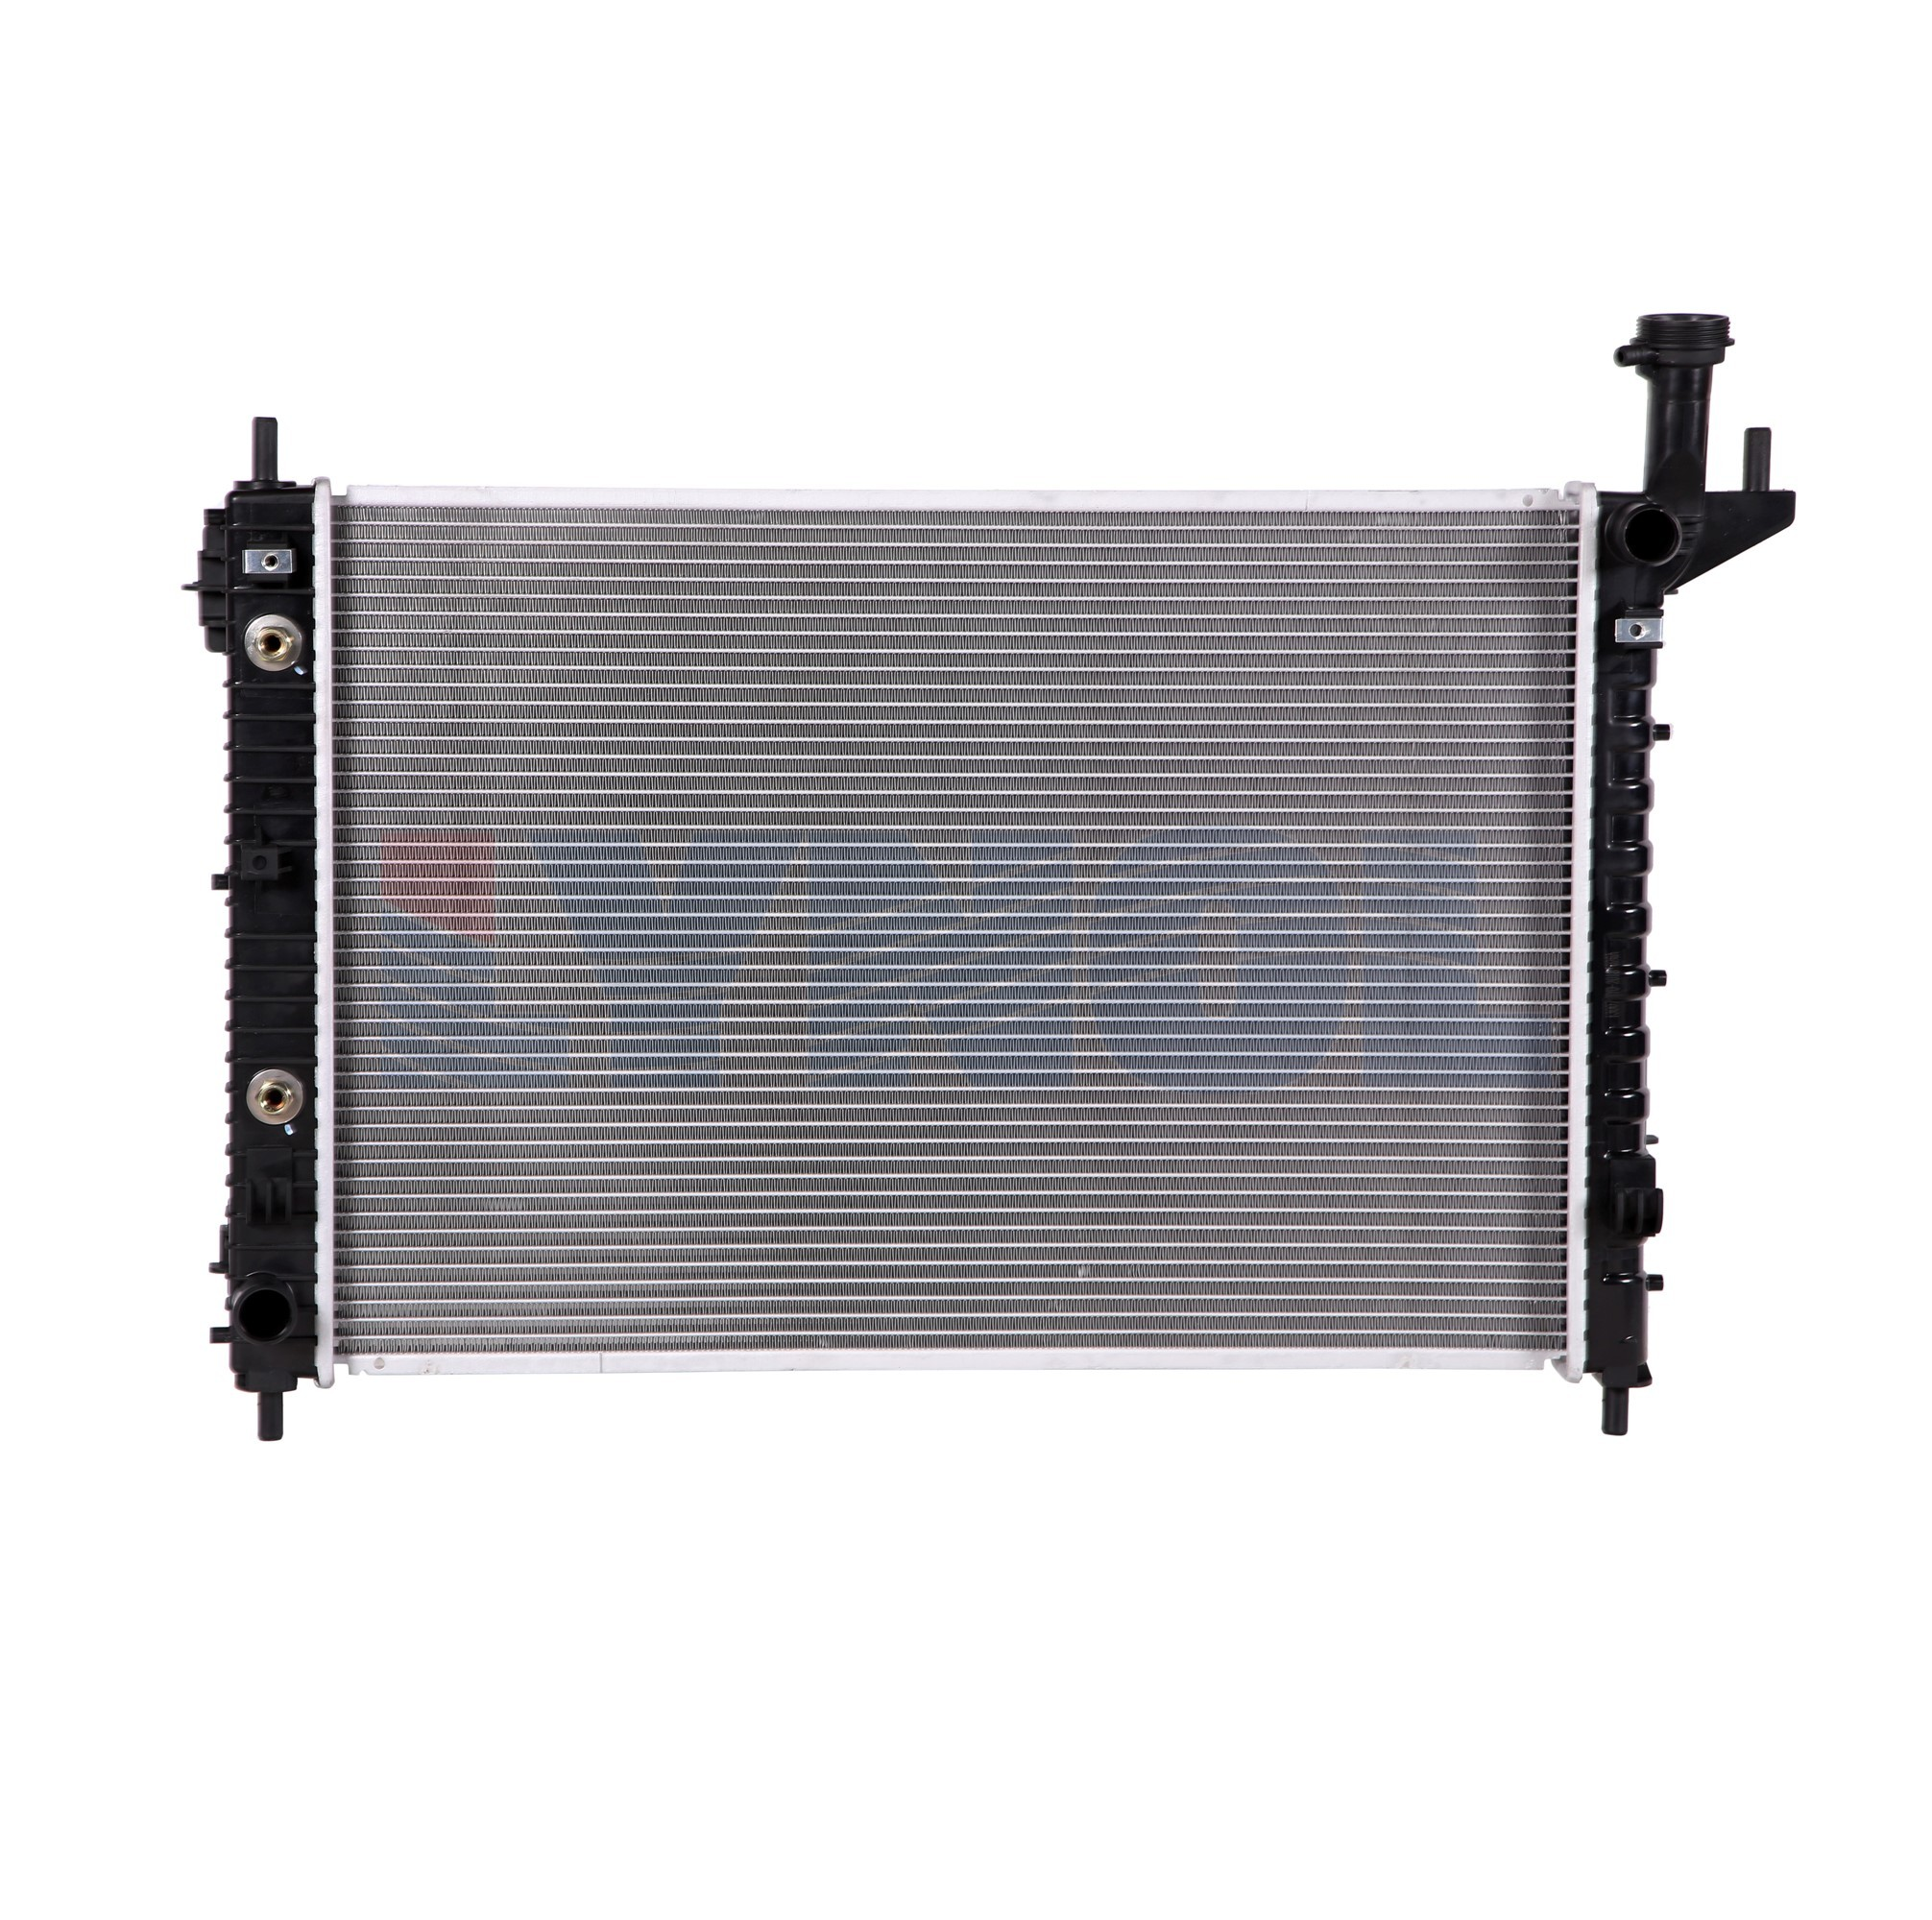 13007 - RADIATOR  - 07-17 GMC/Saturn/Buick/Chevrolet Acadia/Outlook/Enclave/Traverse 3.6l v6